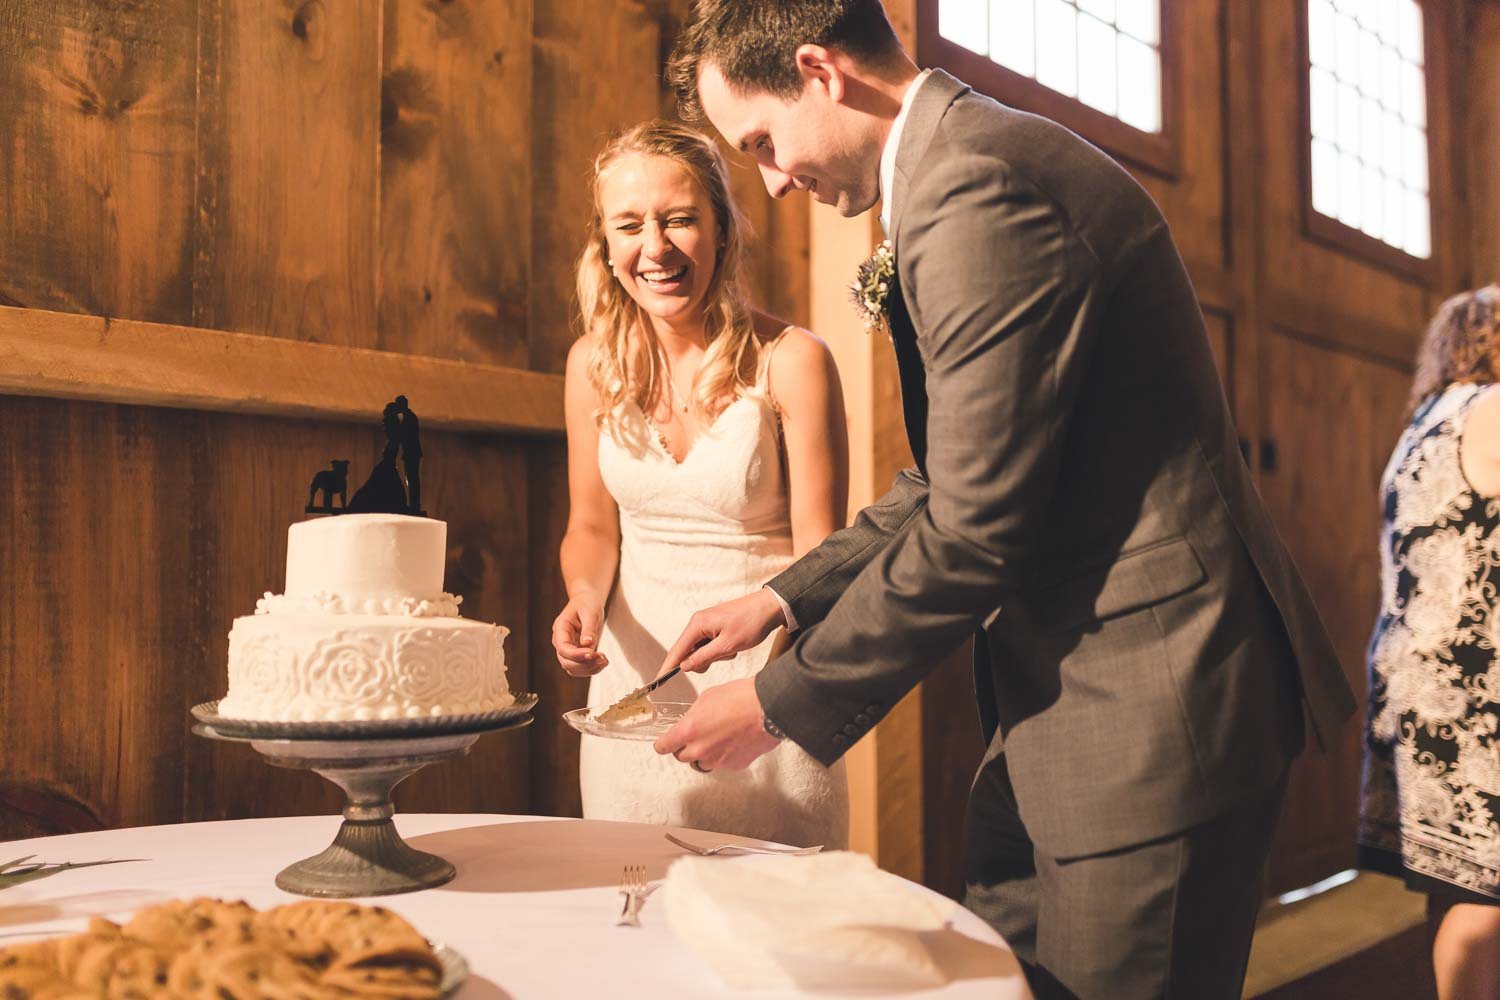 Cake cutting at the Barn at Stoneybrooke